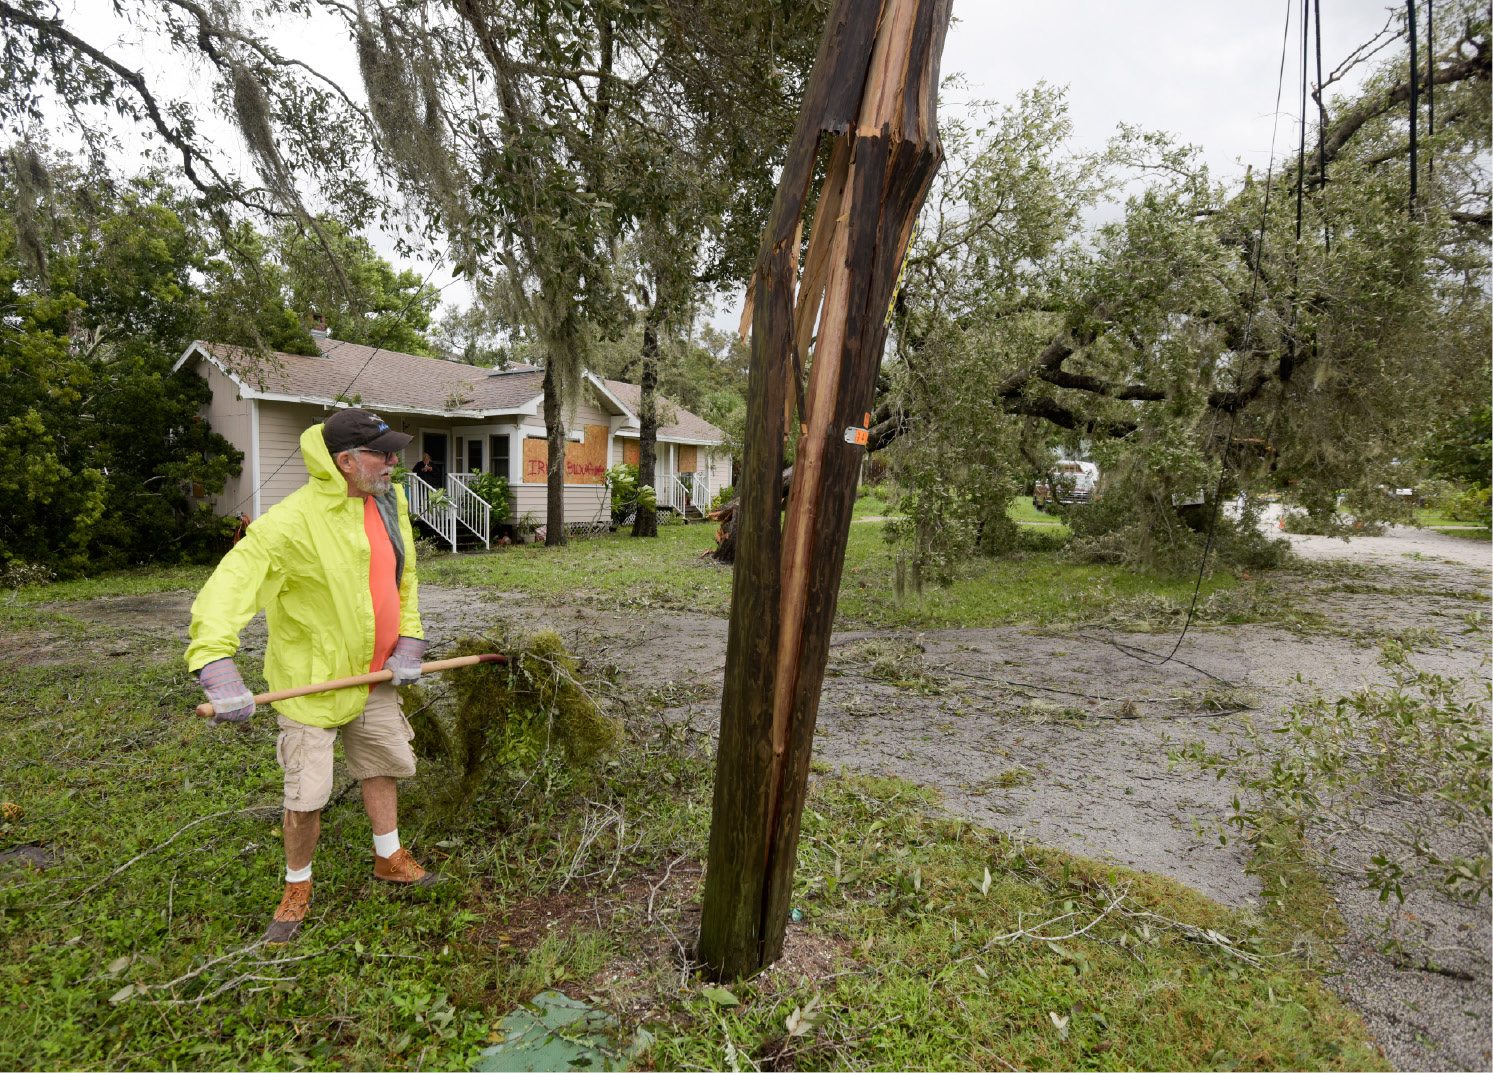 Joe Veciana clears debris from his front yard near a broken power pole after Hurricane Irma, Monday, Sept. 11, 2017, in Palm Harbor, Fla. (Chris Urso/Tampa Bay Times via AP)